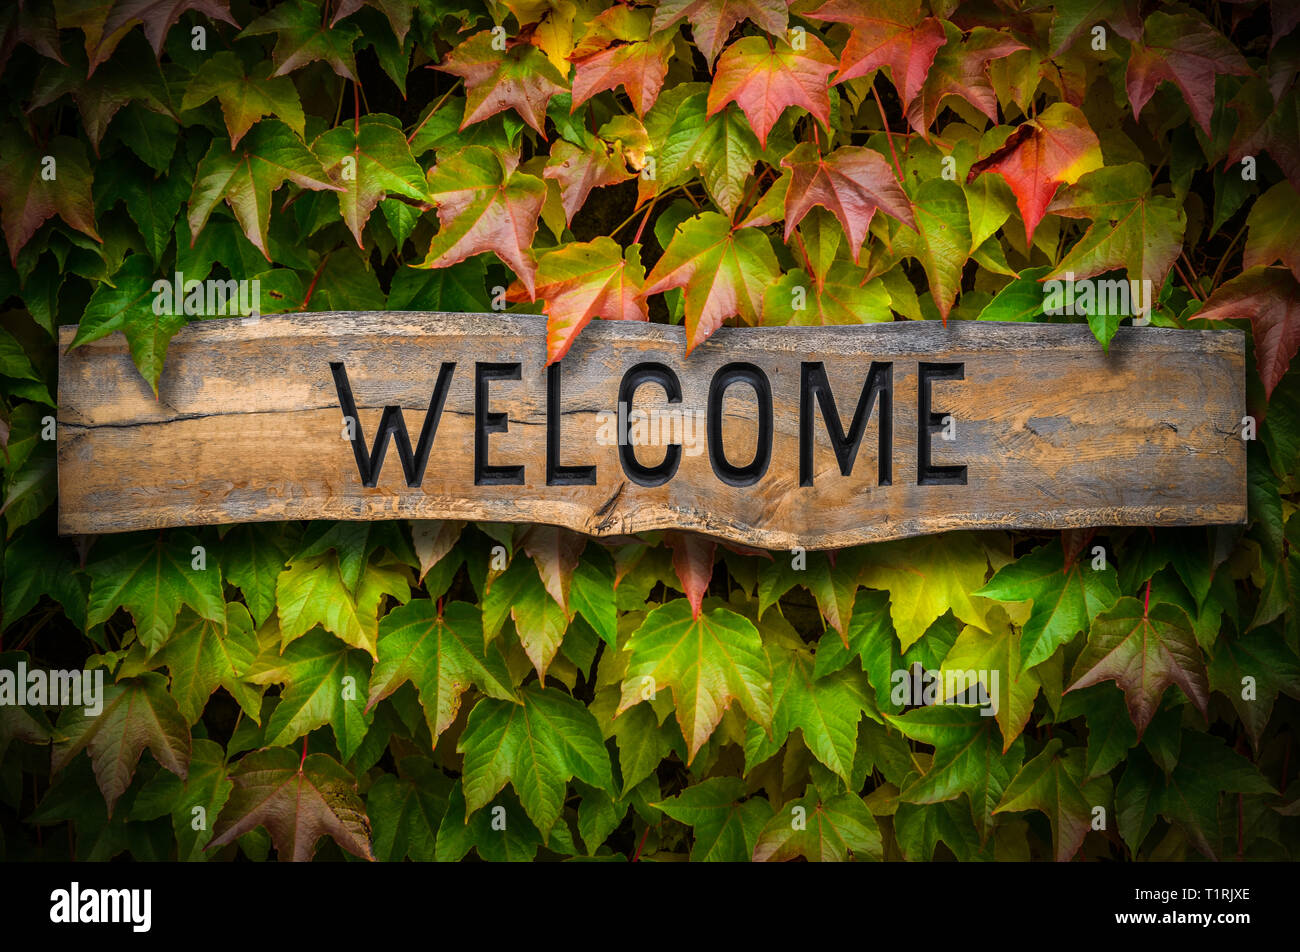 Rustic Retro Wooden Carved Welcome Sign Against A Beautiful Leafy Backdrop Outside A School Or Hotel Or Restaurant - Stock Image